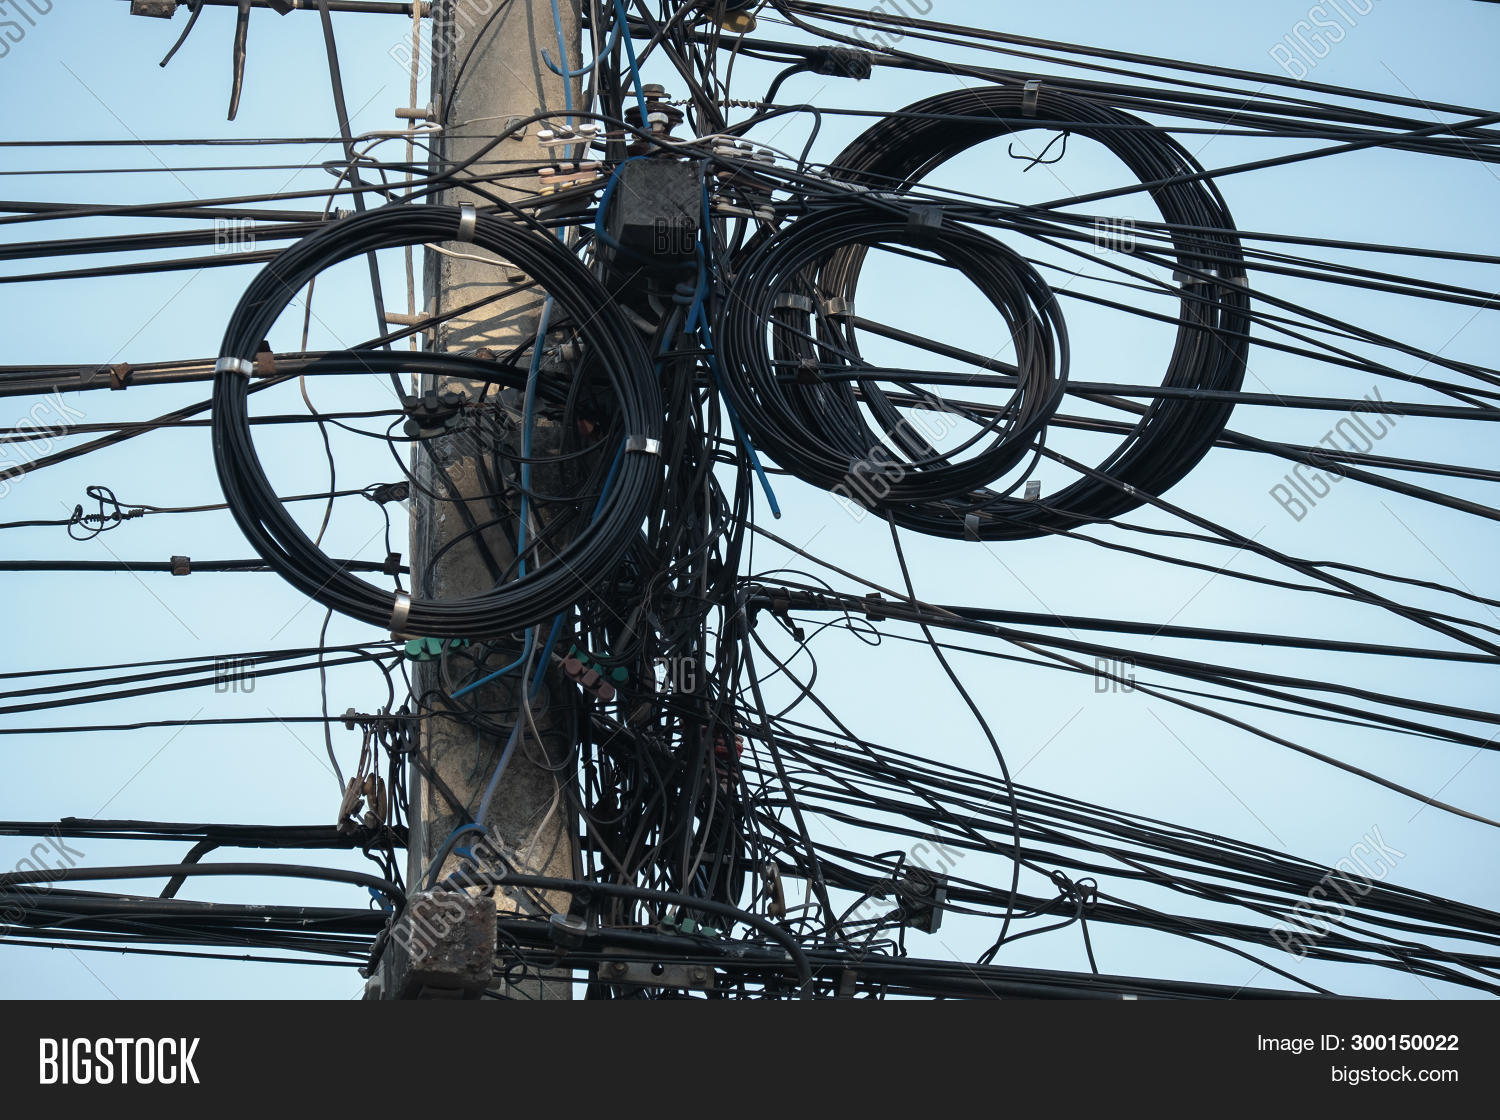 Tangled Electric Wire Image Photo Free Trial Bigstock